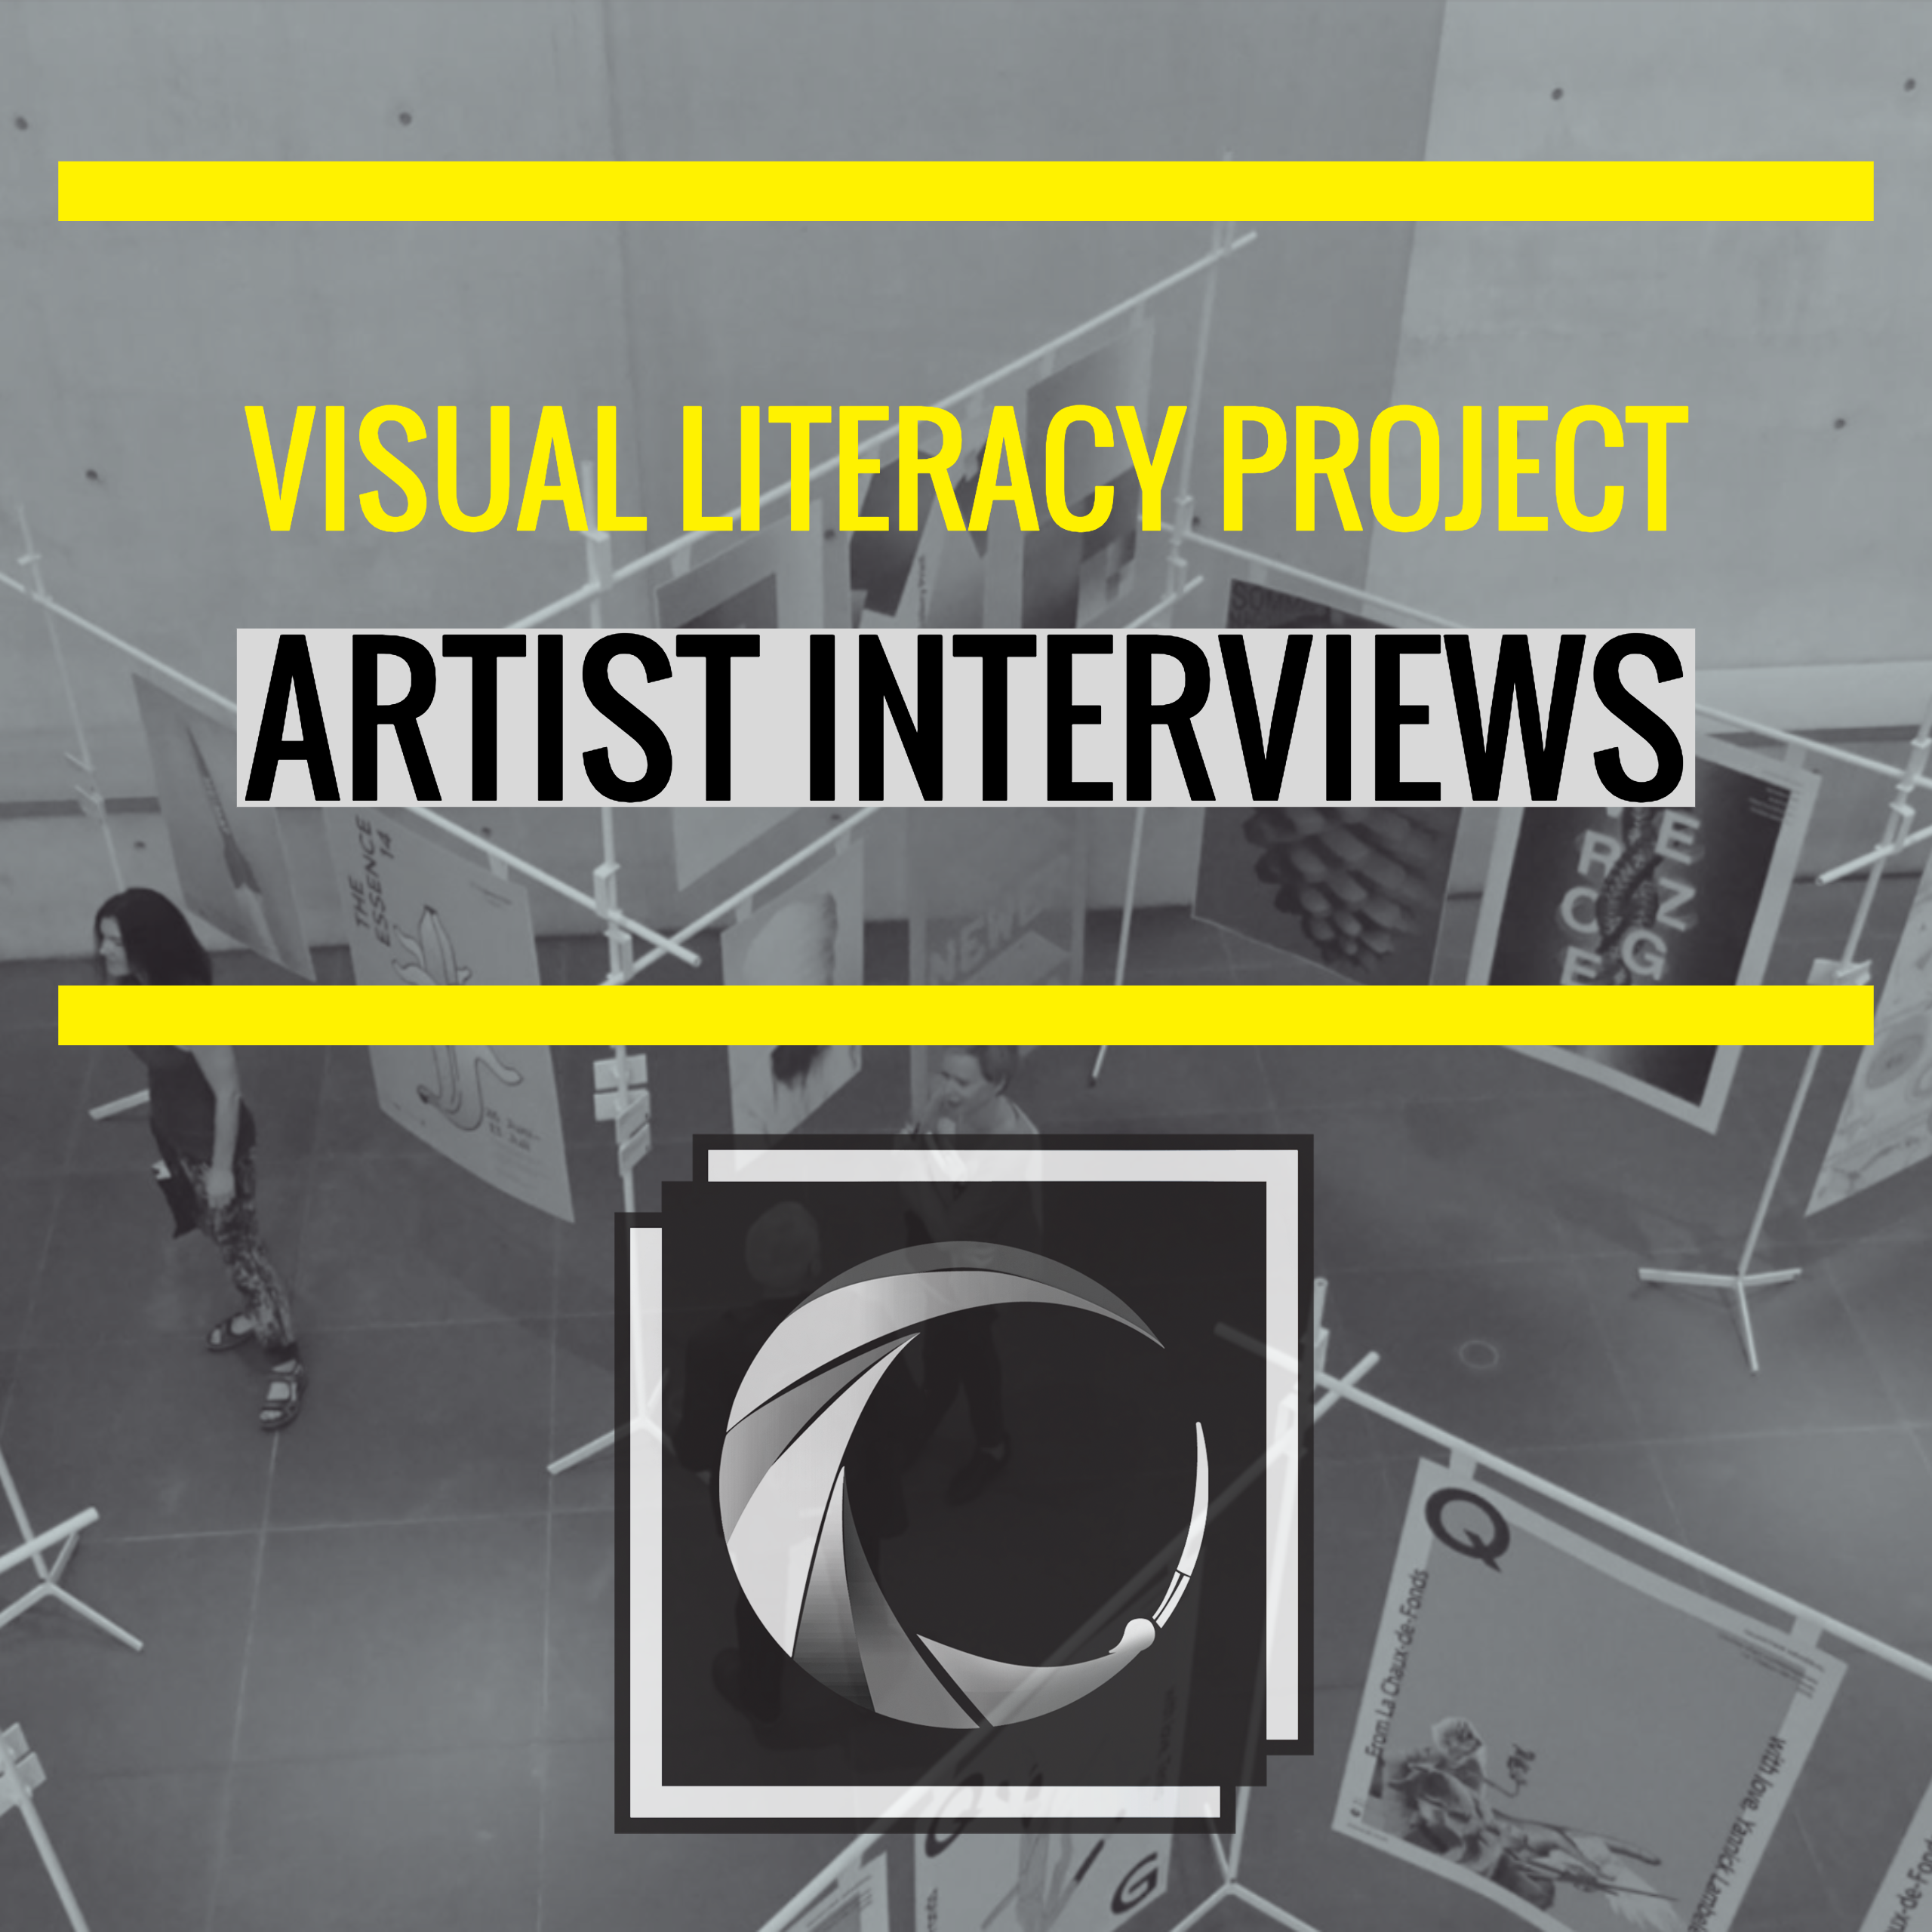 Visual Literacy Project artist interviews